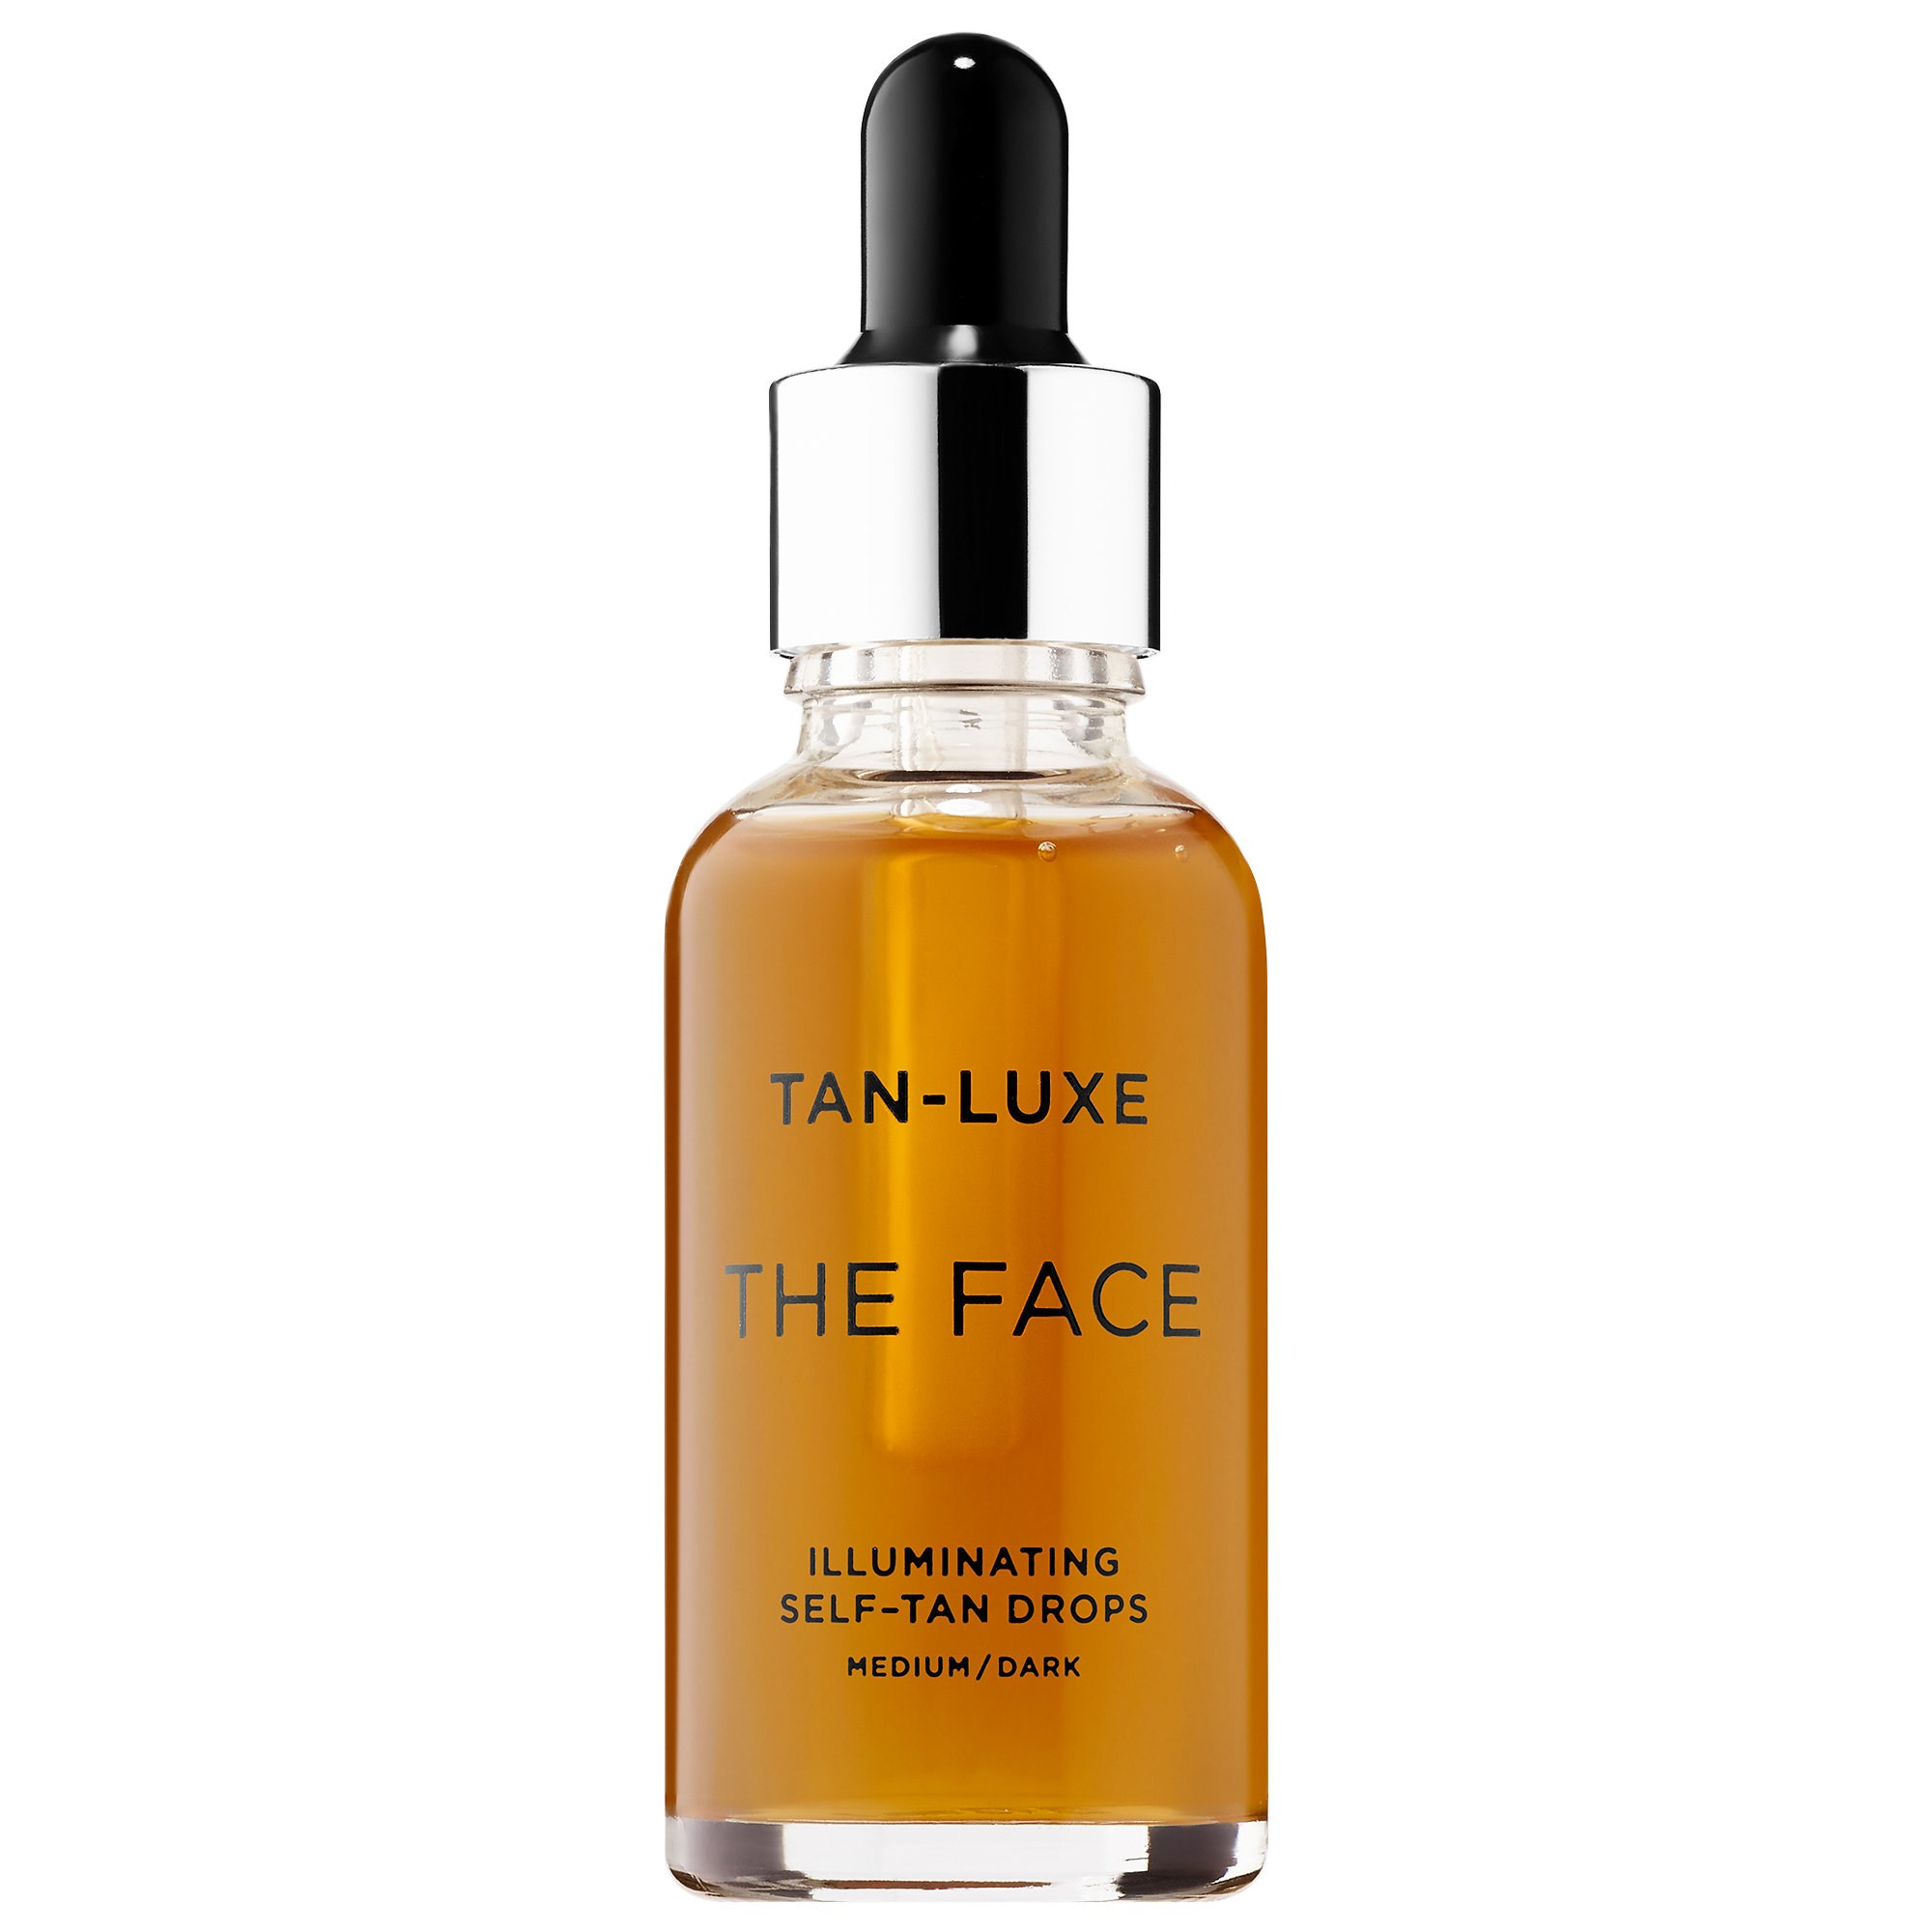 tan-luxe the face serum